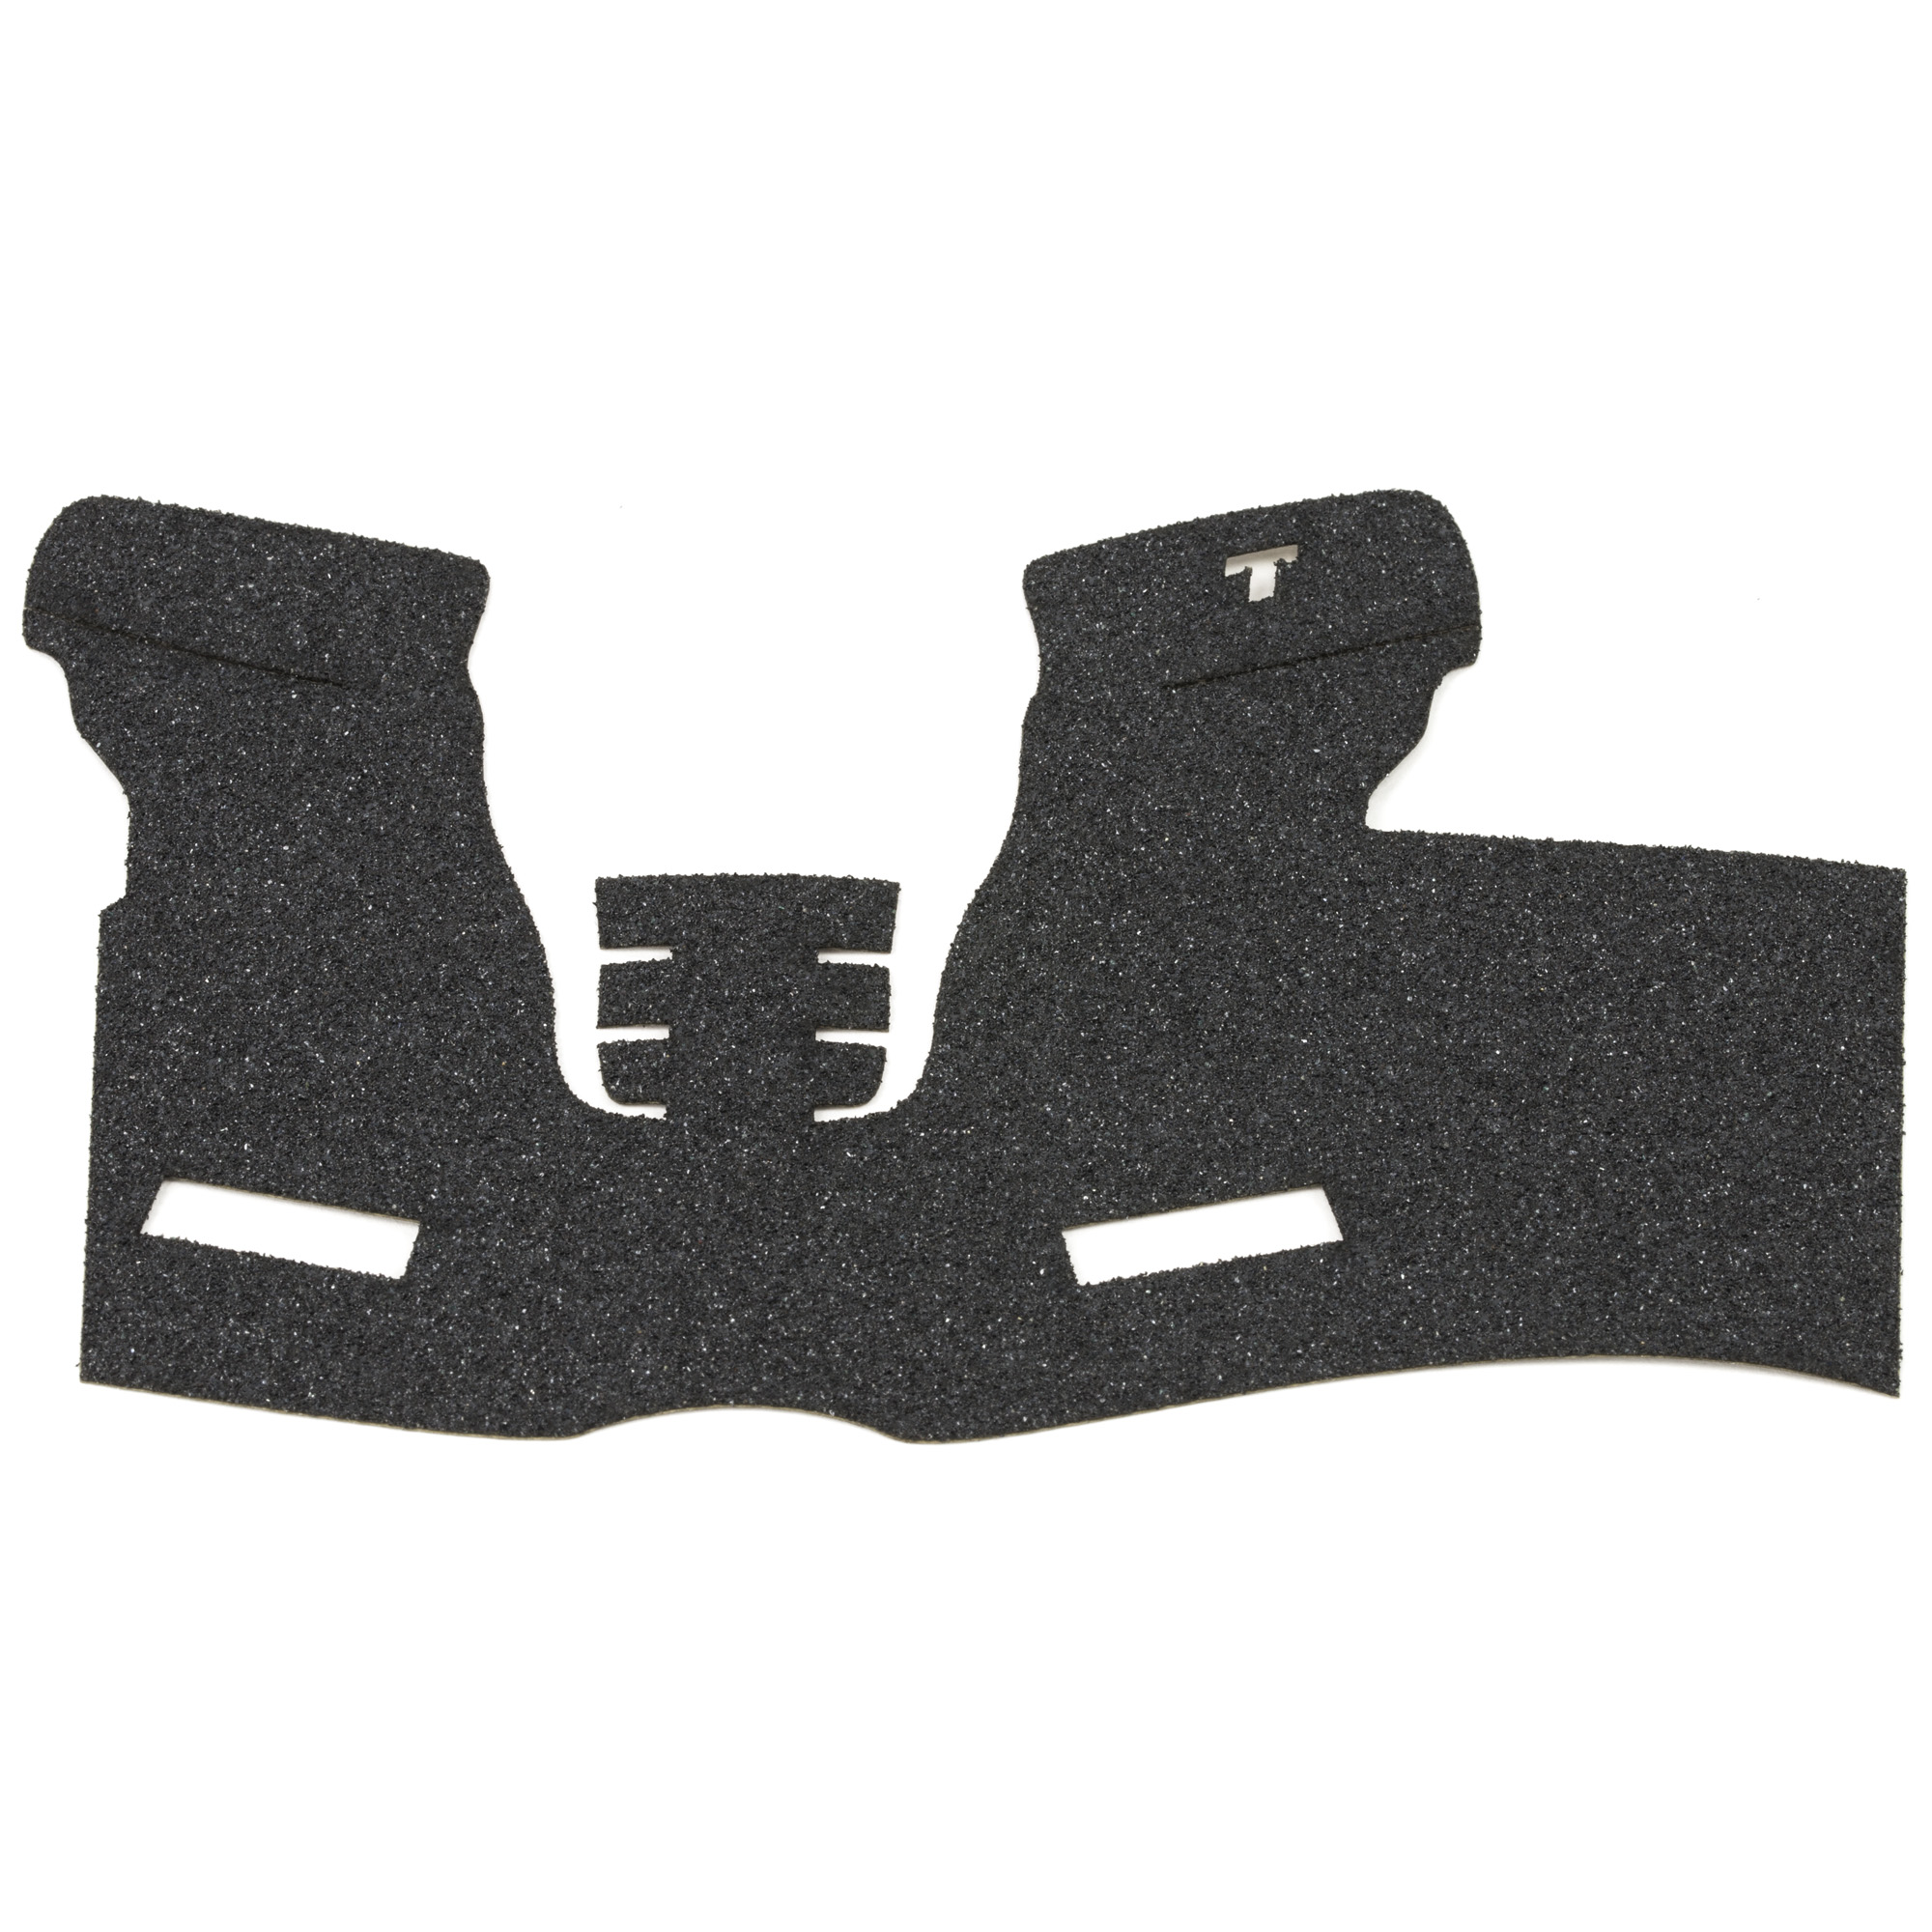 """TALON Grips for Full Size Springfield XD models with the 4"""" and 5"""" barrels for the 9mm"""" .357"""" .40. This rear wrap grip is in the granulate texture. This grip has full coverage on the side panels through the thumb rest"""" logo cutouts on each side"""" ample coverage on the backstrap and full coverage under the trigger guard."""